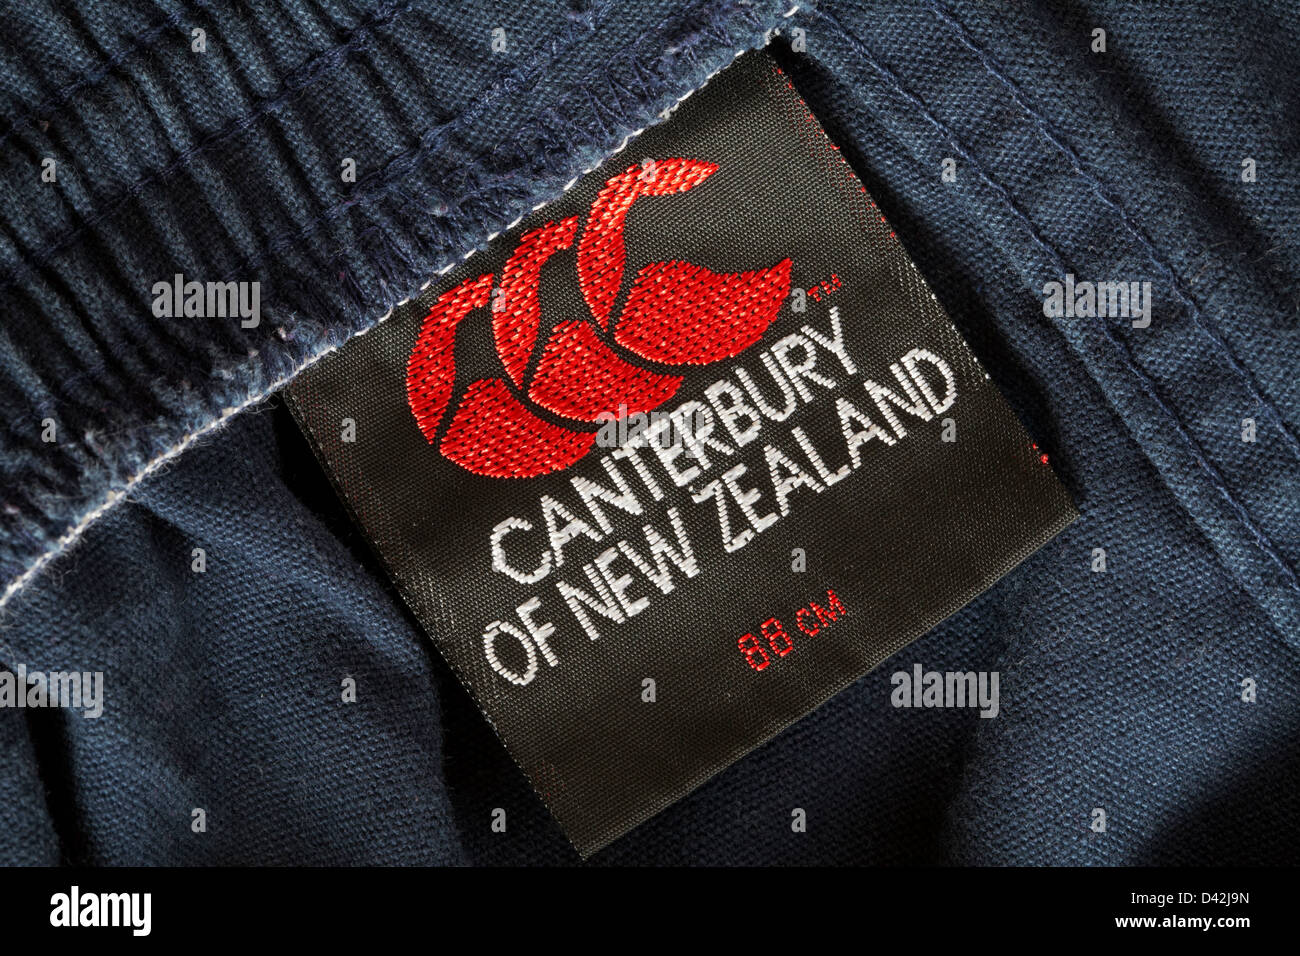 Canterbury of New Zealand label in trousers - Stock Image